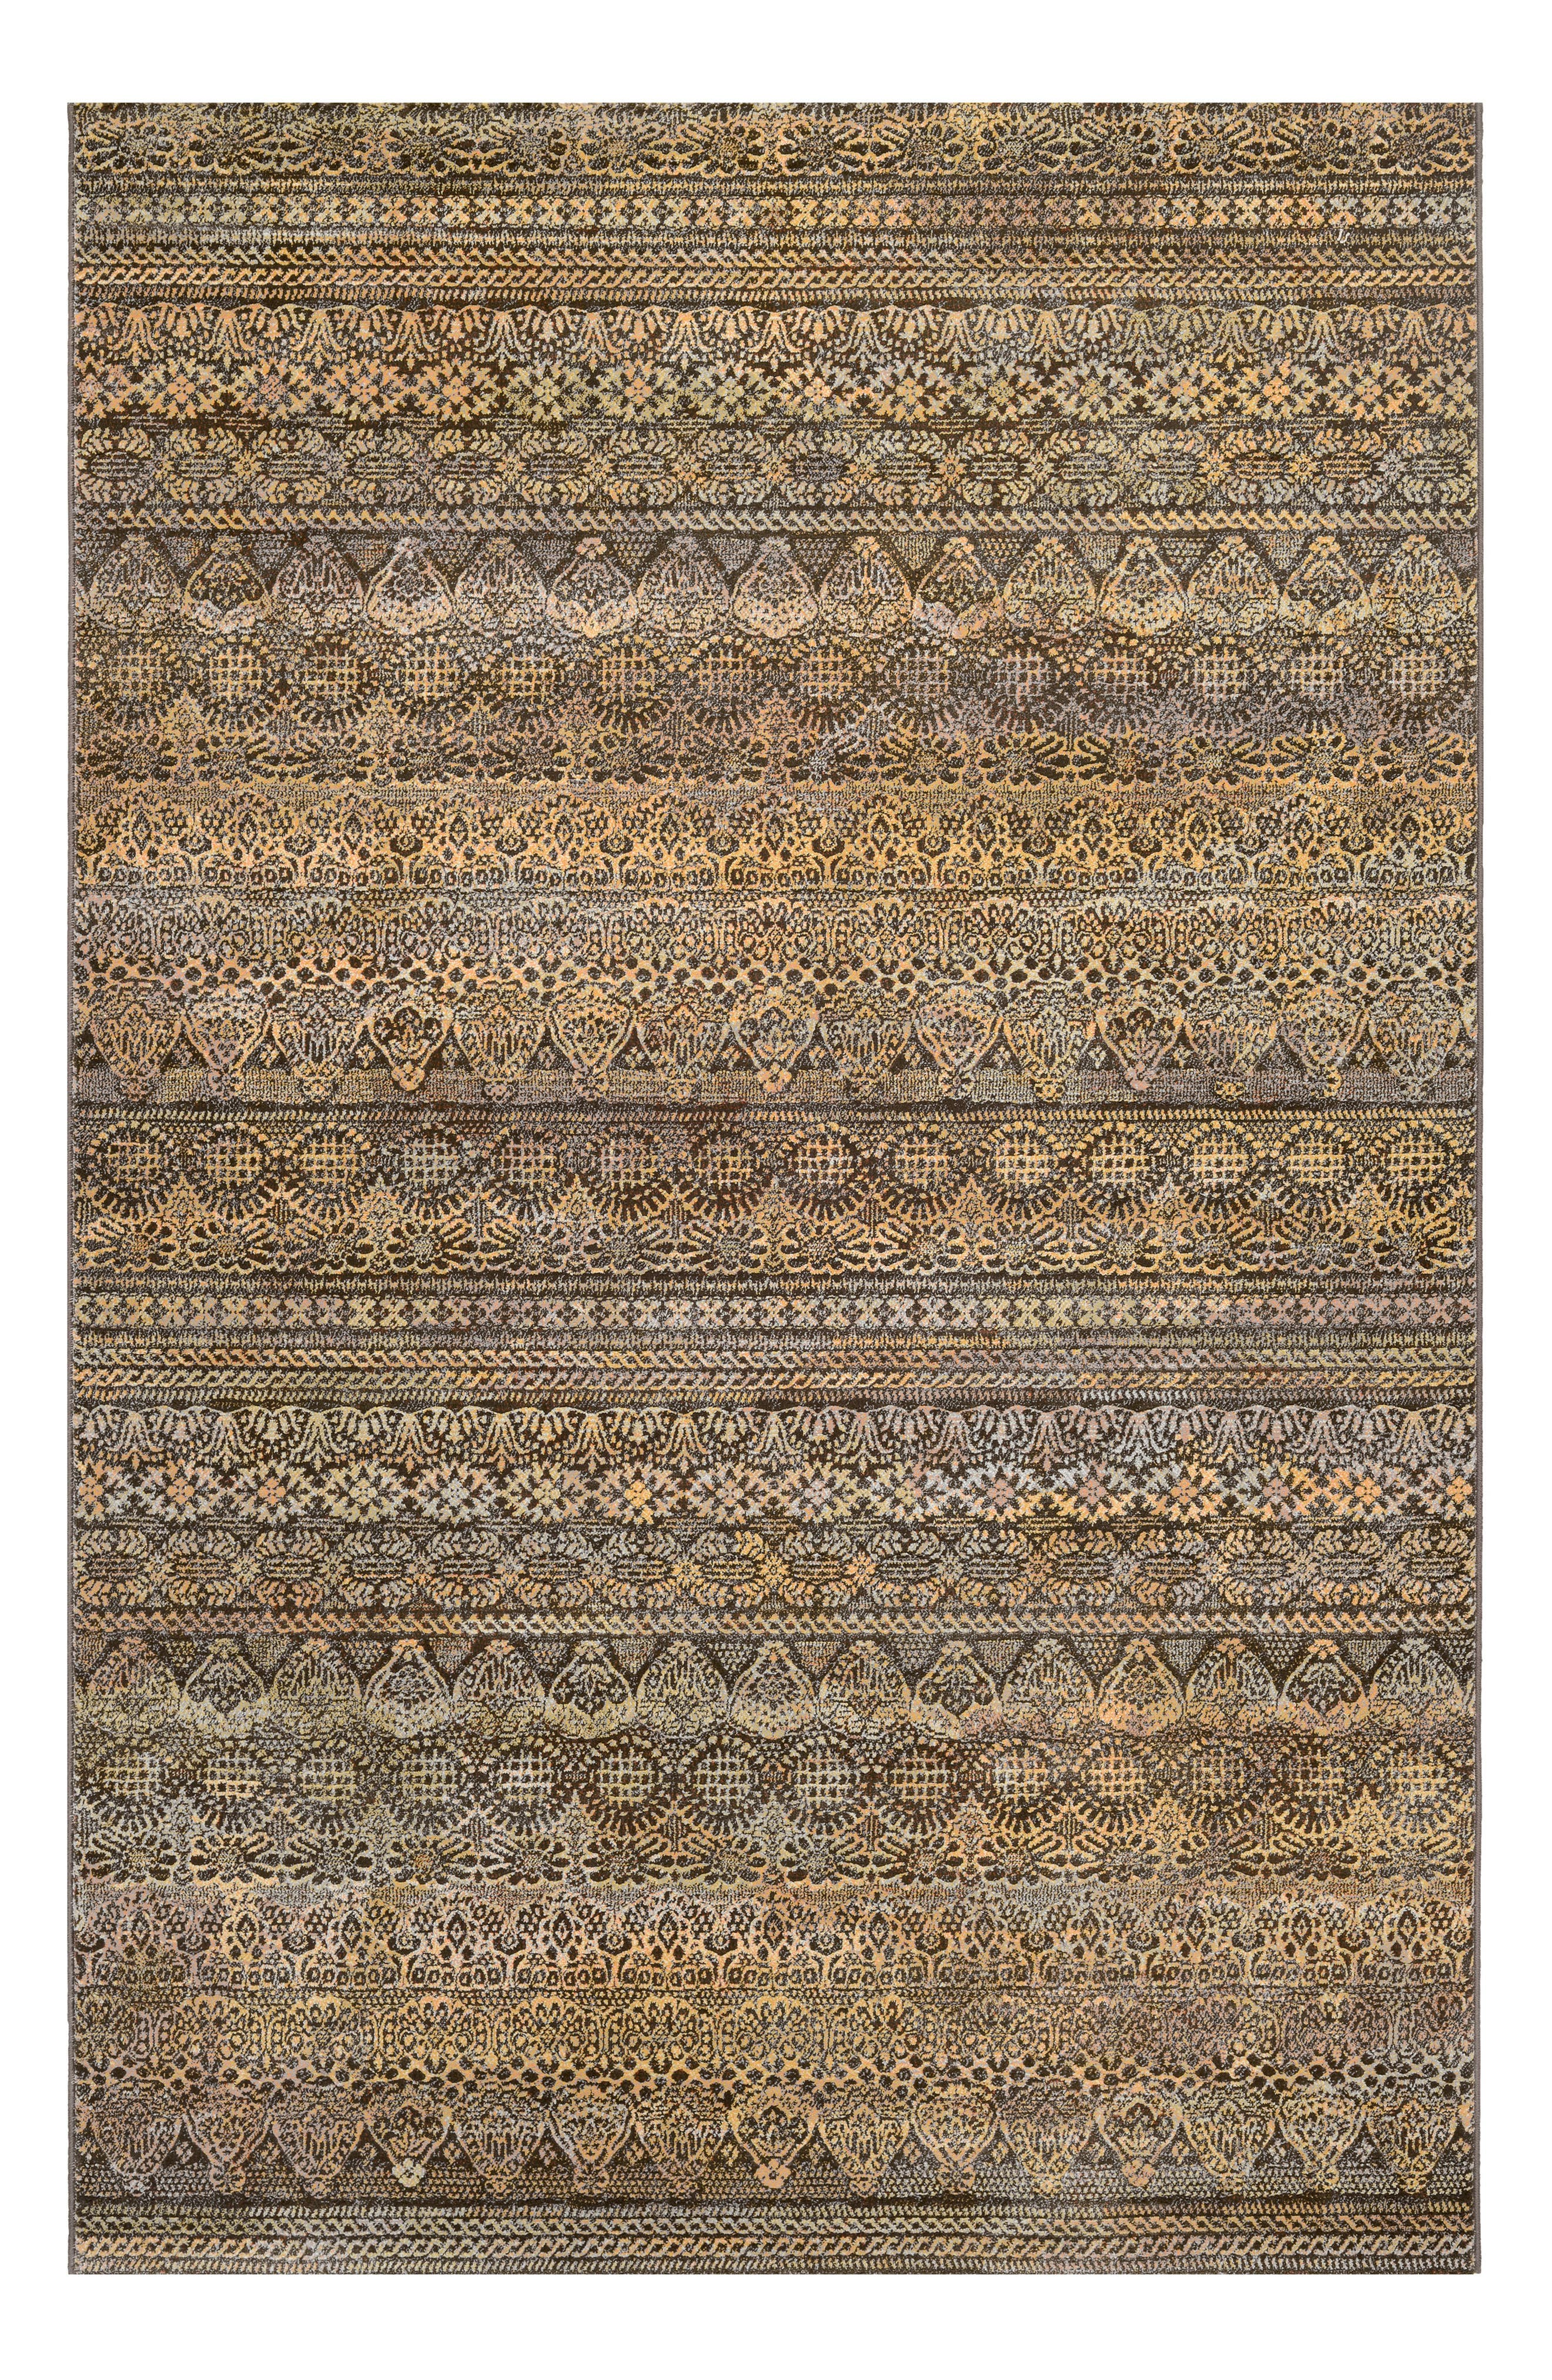 Easton Capella Area Rug,                             Main thumbnail 1, color,                             BROWN/ MULTI